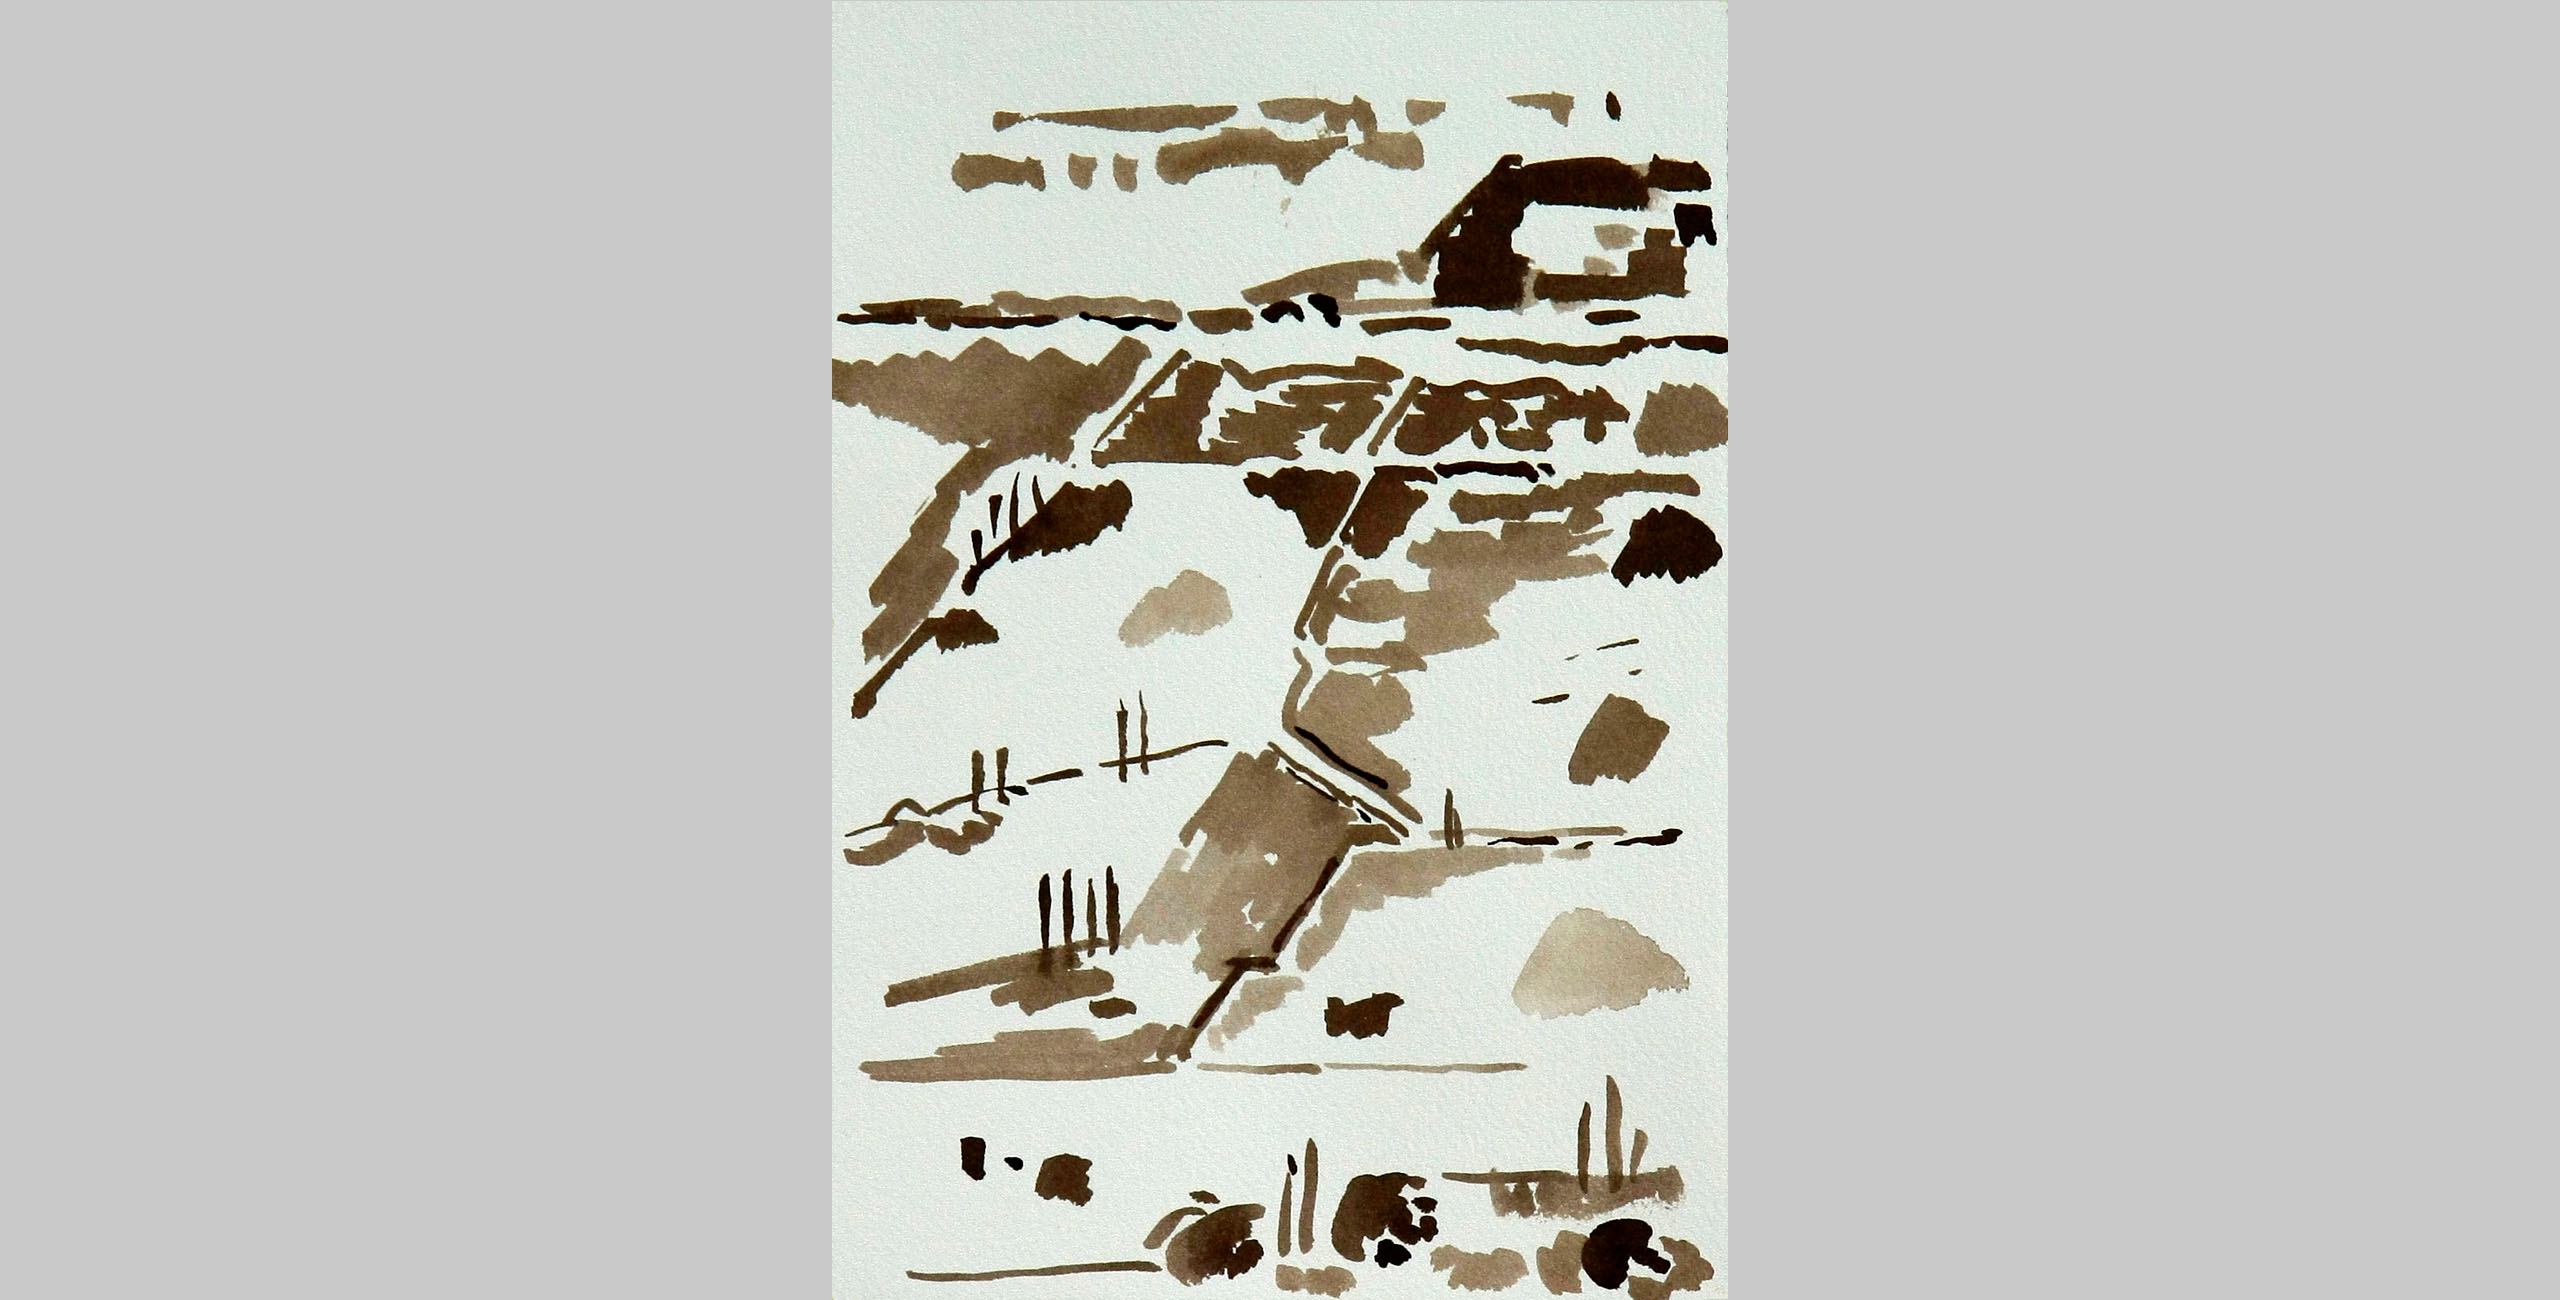 Landscape 19, 2011, ink on paper